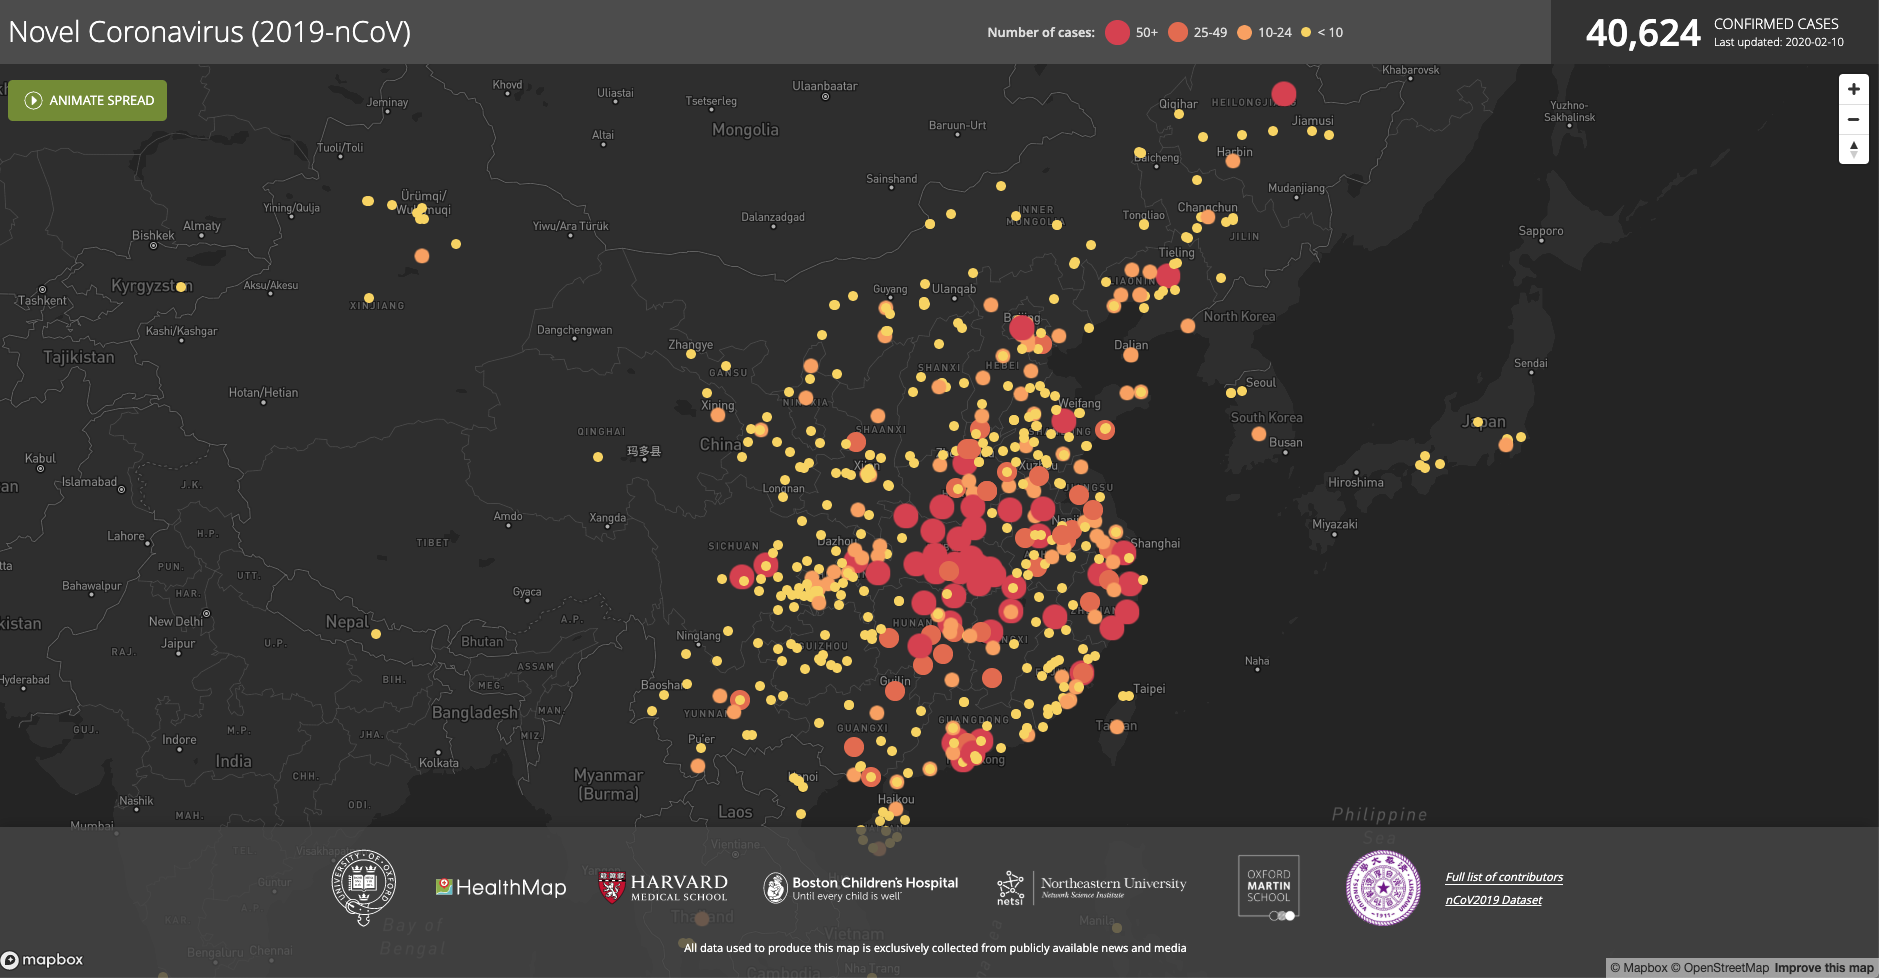 Healthmap's data visualization of 2019-nCoV's spread in China and east Asia as of February 10, 2020